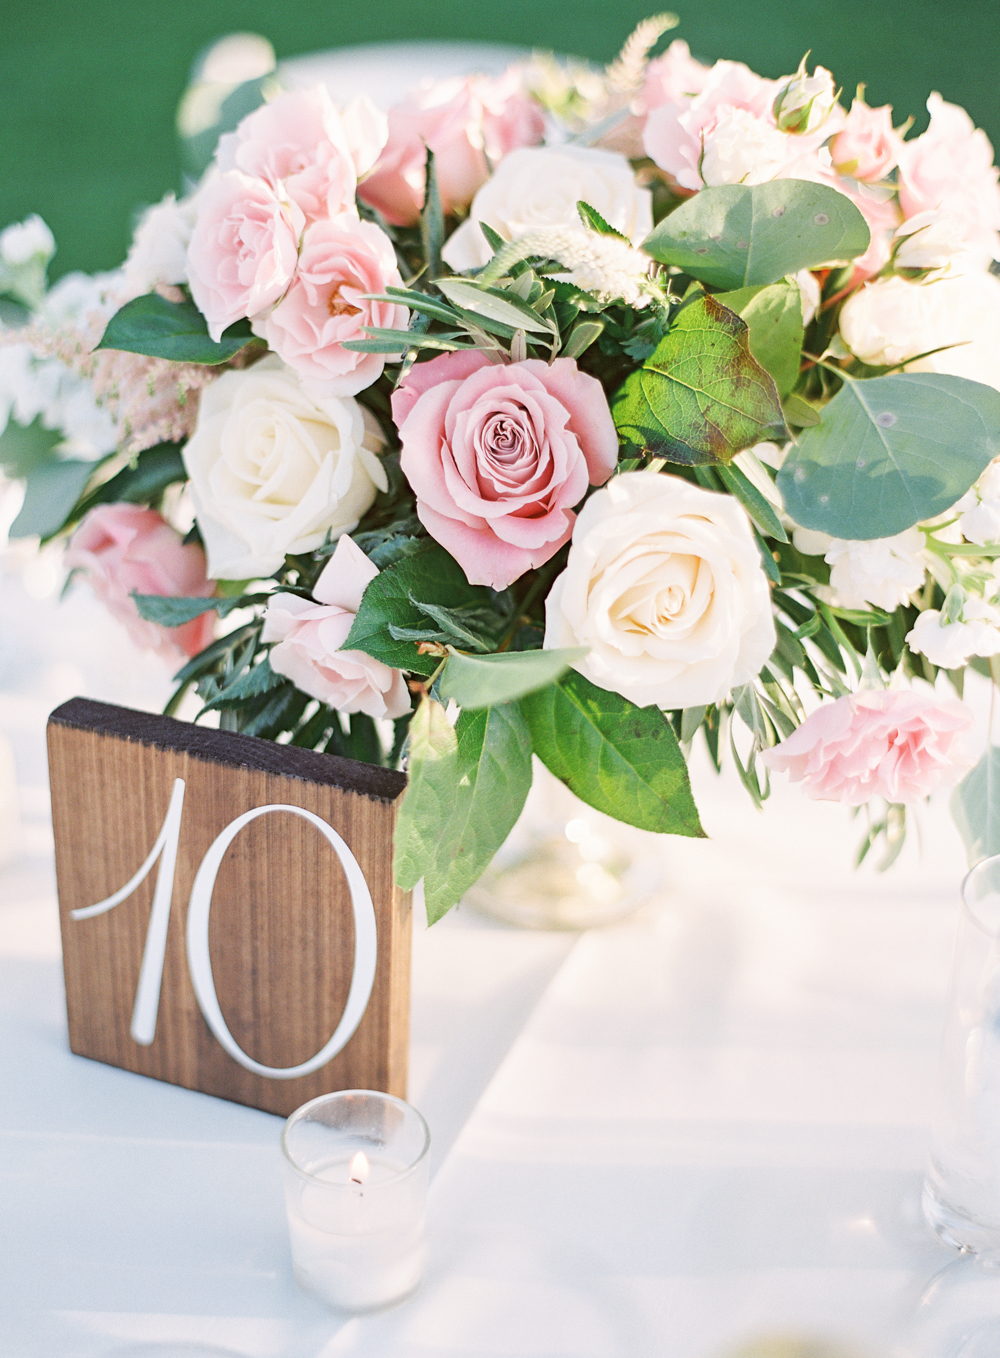 Posh Peony Centerpiece | Mount Palomar Winery Wedding | Blush and Lavender | San Diego wedding photographer | Temecula wedding photographer | Southern California film photographer | Whiskers and Willow Photography